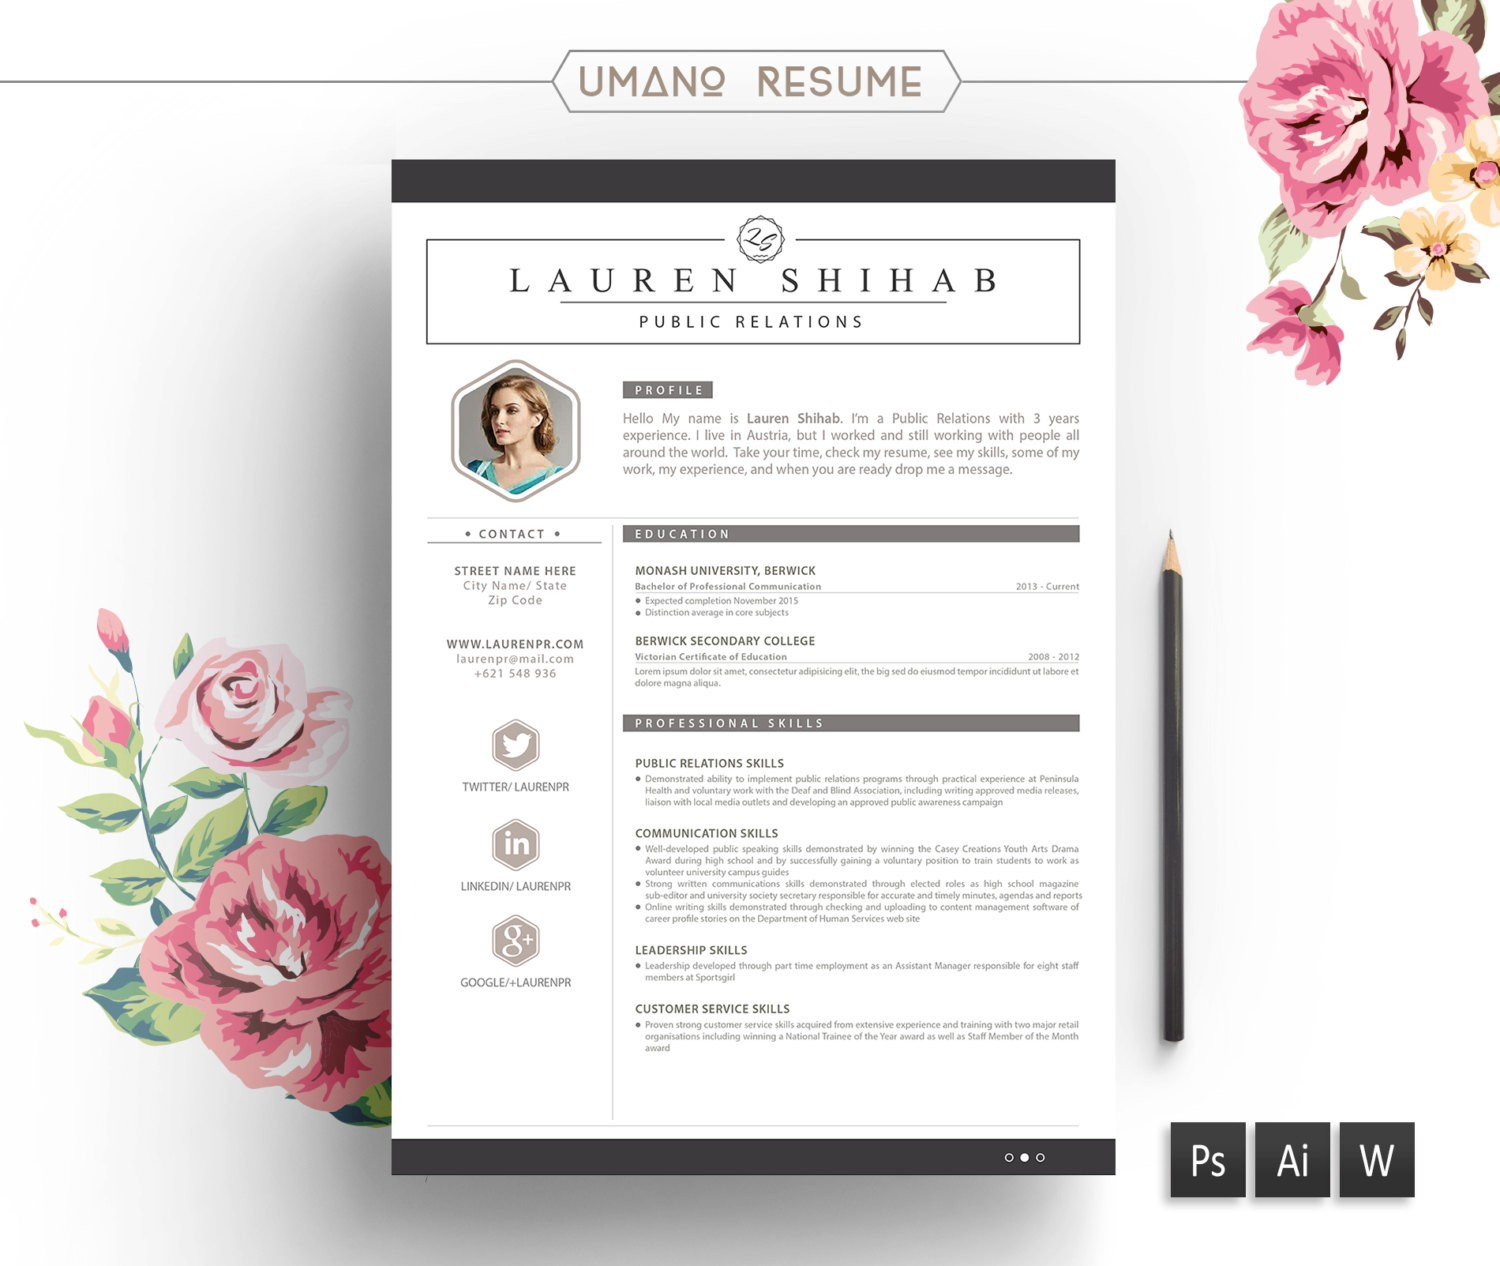 lying on your resume is it good idea by alice berg medium about education 84l1qzje9tv3 Resume Lying About Education On Resume